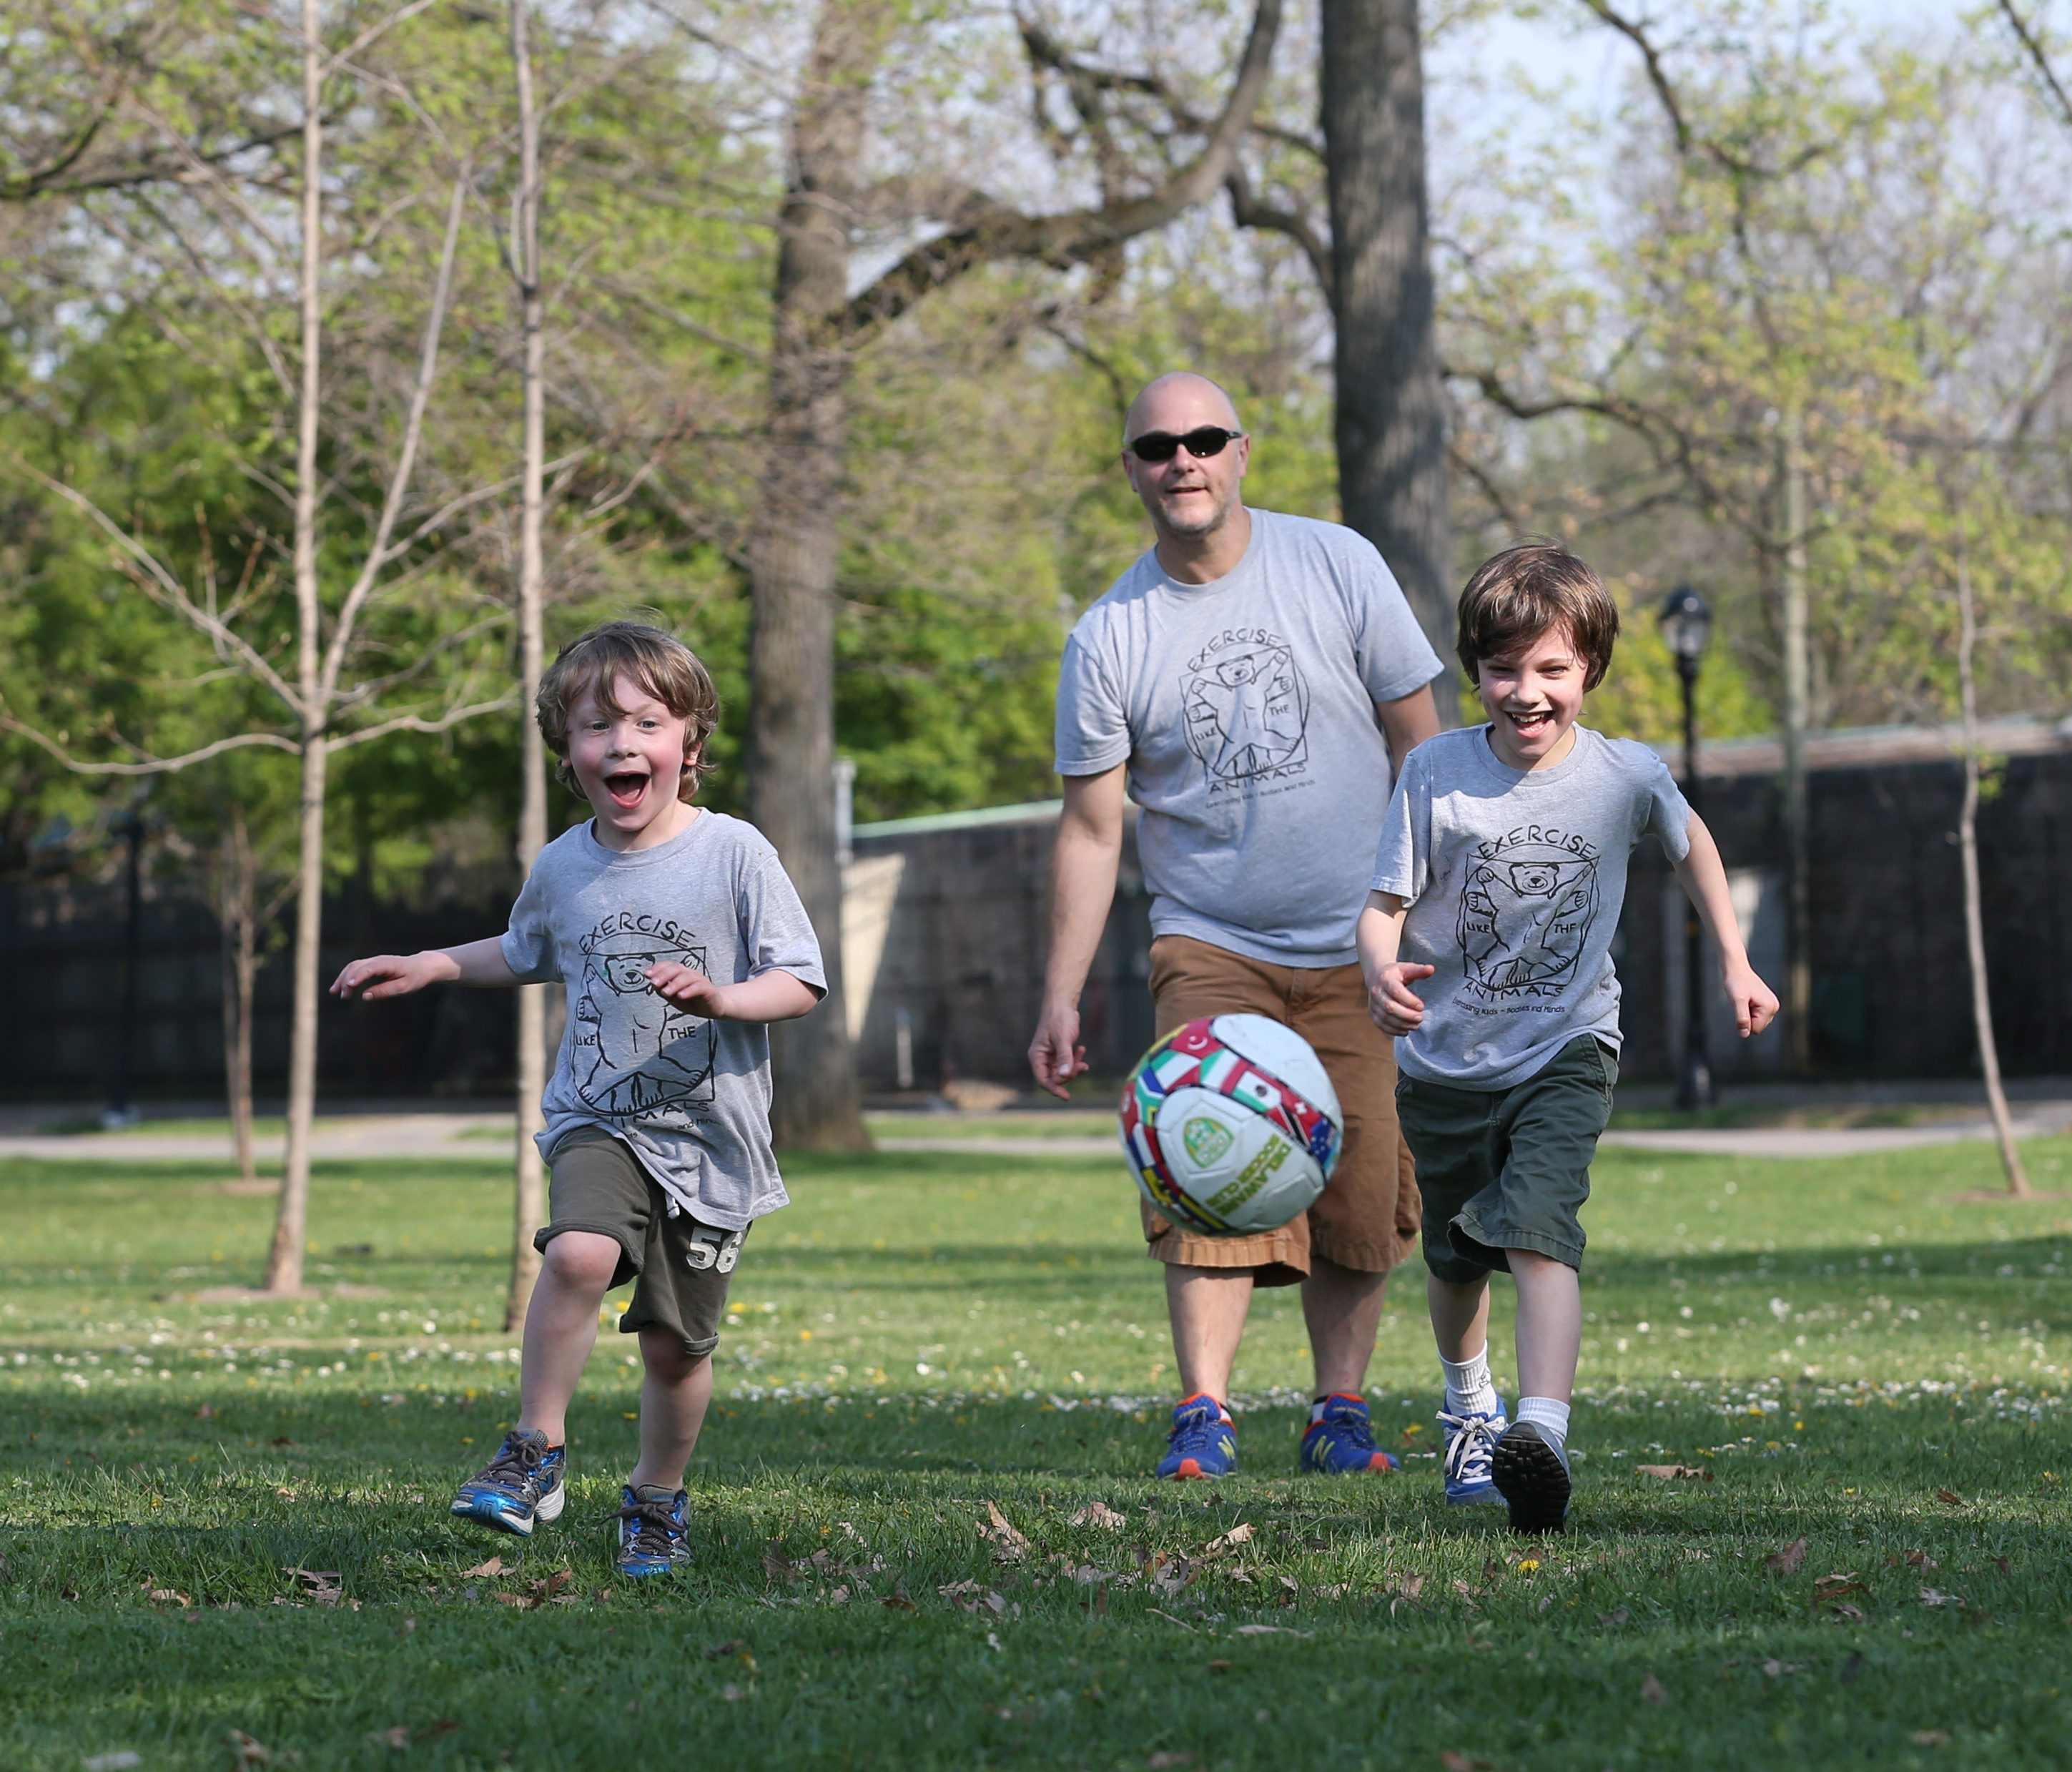 Jerry Turcotte and his wife Diana Proske walked to Delaware Park to play with their sons Simon, 4, left, and Max, 8, Friday, May 8, 2015.  (Sharon Cantillon/Buffalo News)